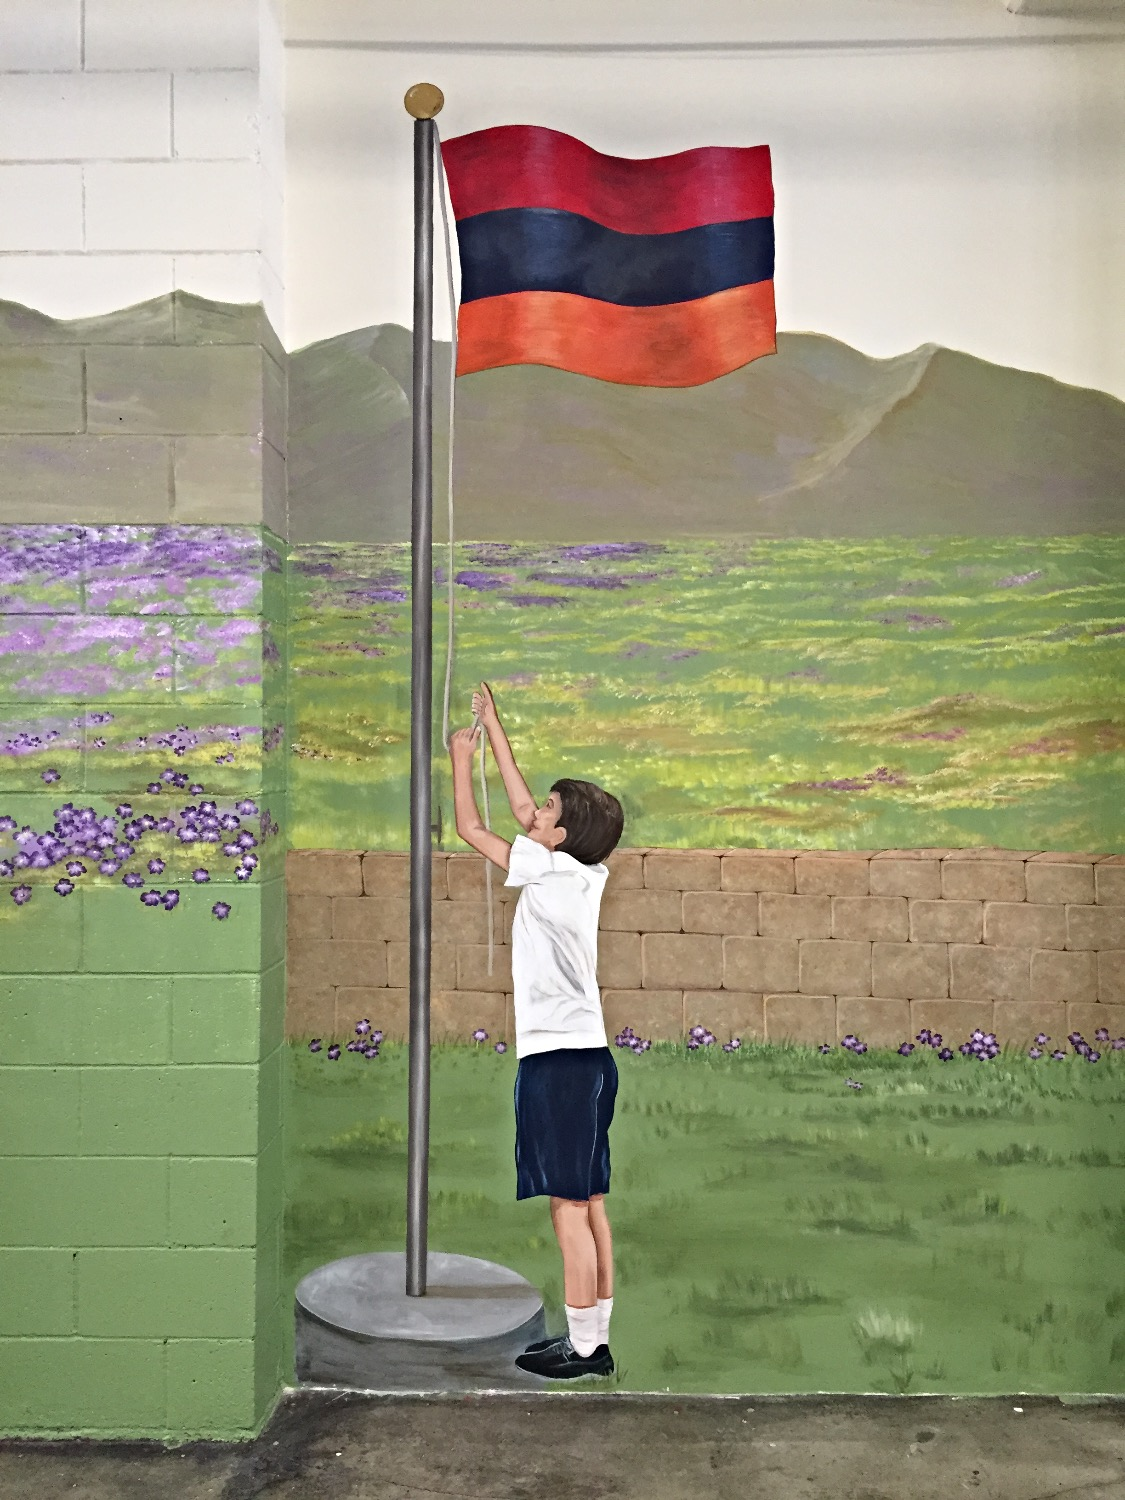 """Student"" hanging the Armenian flag"